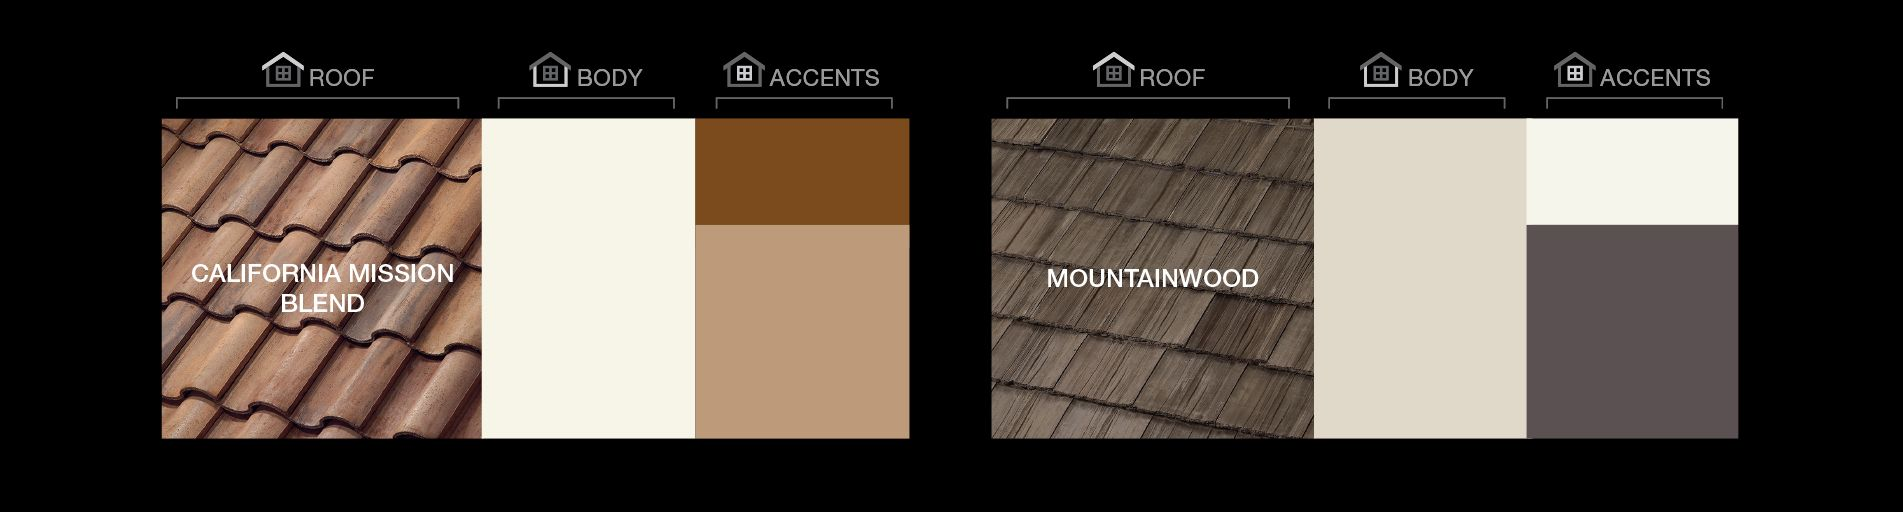 How To Enhance The Color Harmony Of Your Home Roofing Boral Usa Color Harmony Roofing Enhance Curb Appeal